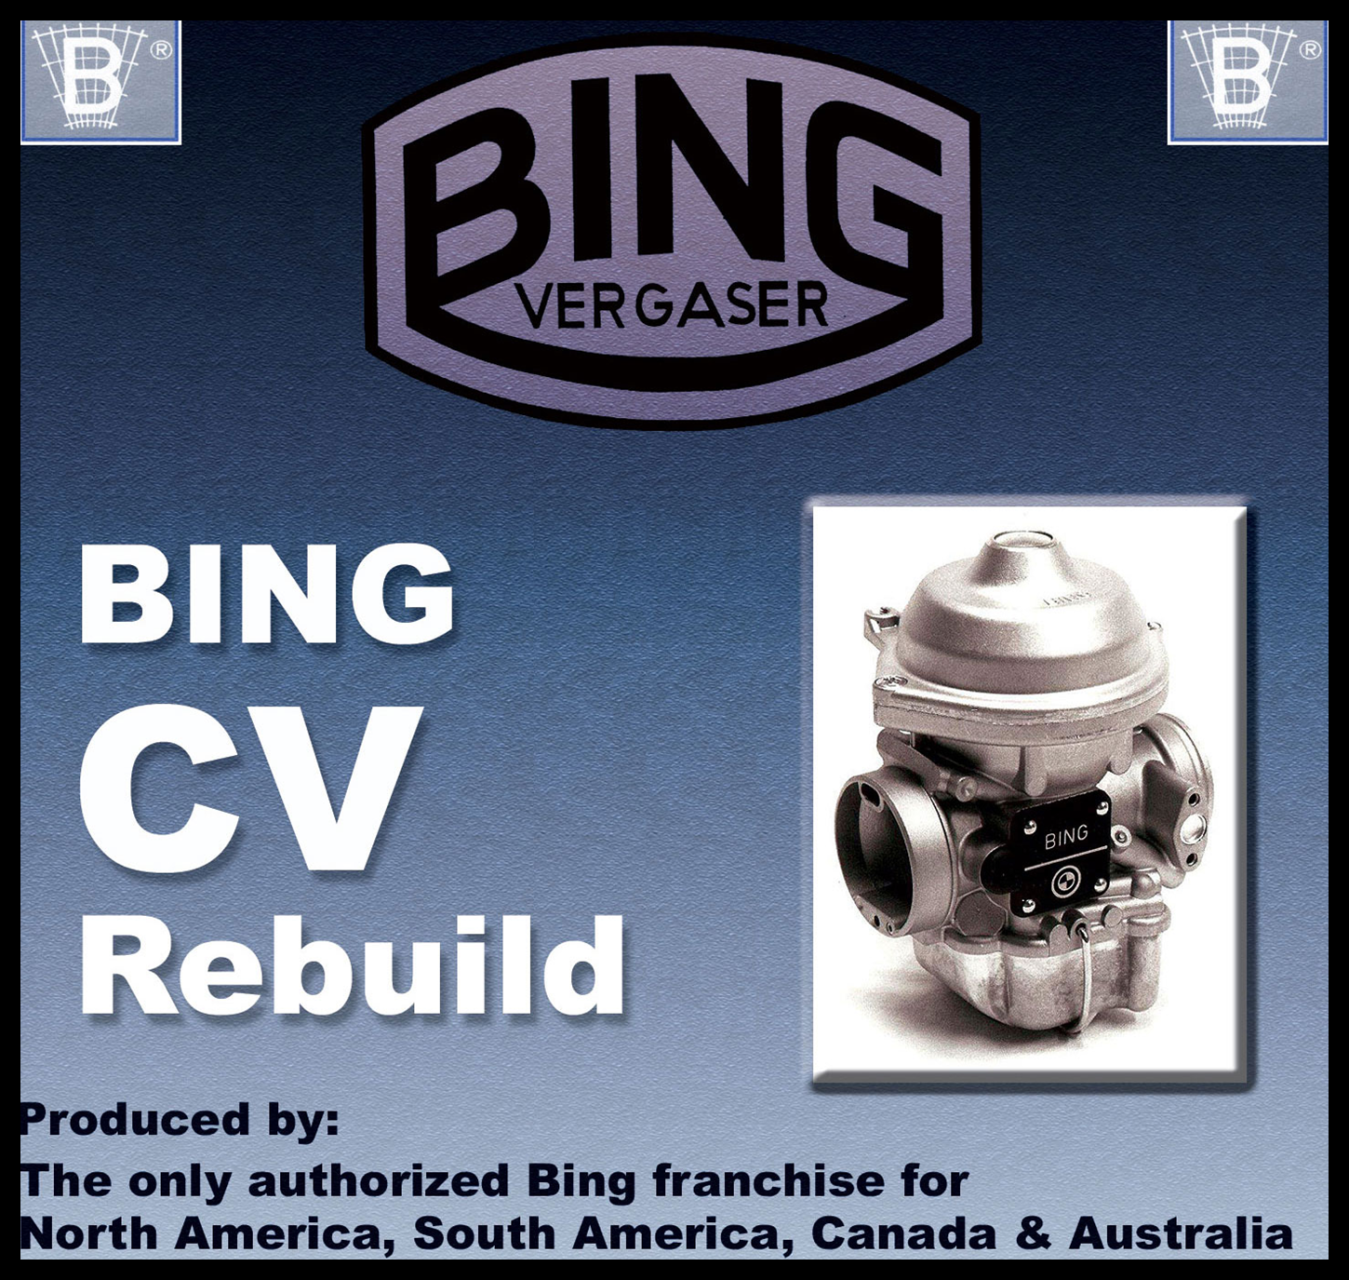 Manual - BING AGENCY INTERNATIONALSOLE DISTRIBUTORFOR BING CARBURETORS AND  THROTTLE BODIES IN THE US, CANADA,SOUTH AMERICA AND AUSTRALIA